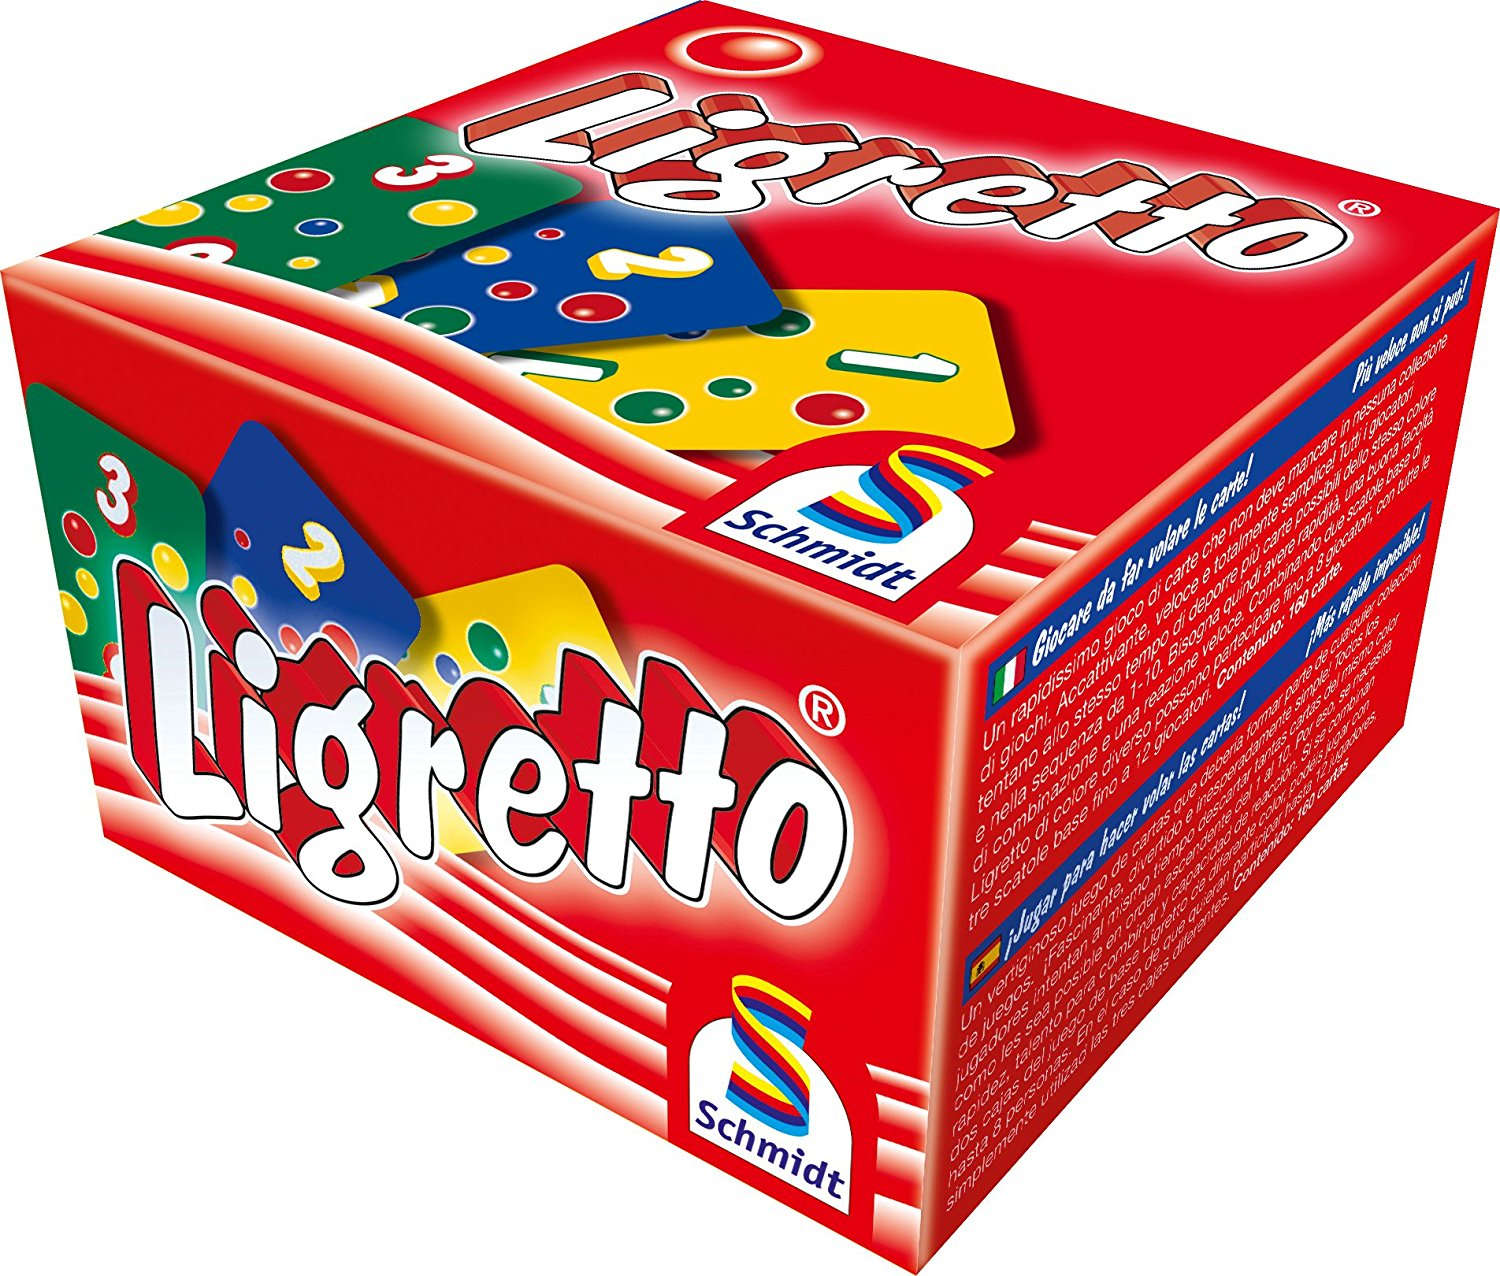 Schmidt Ligretto Red Edition Card Game: Amazon.co.uk: Toys & Games.